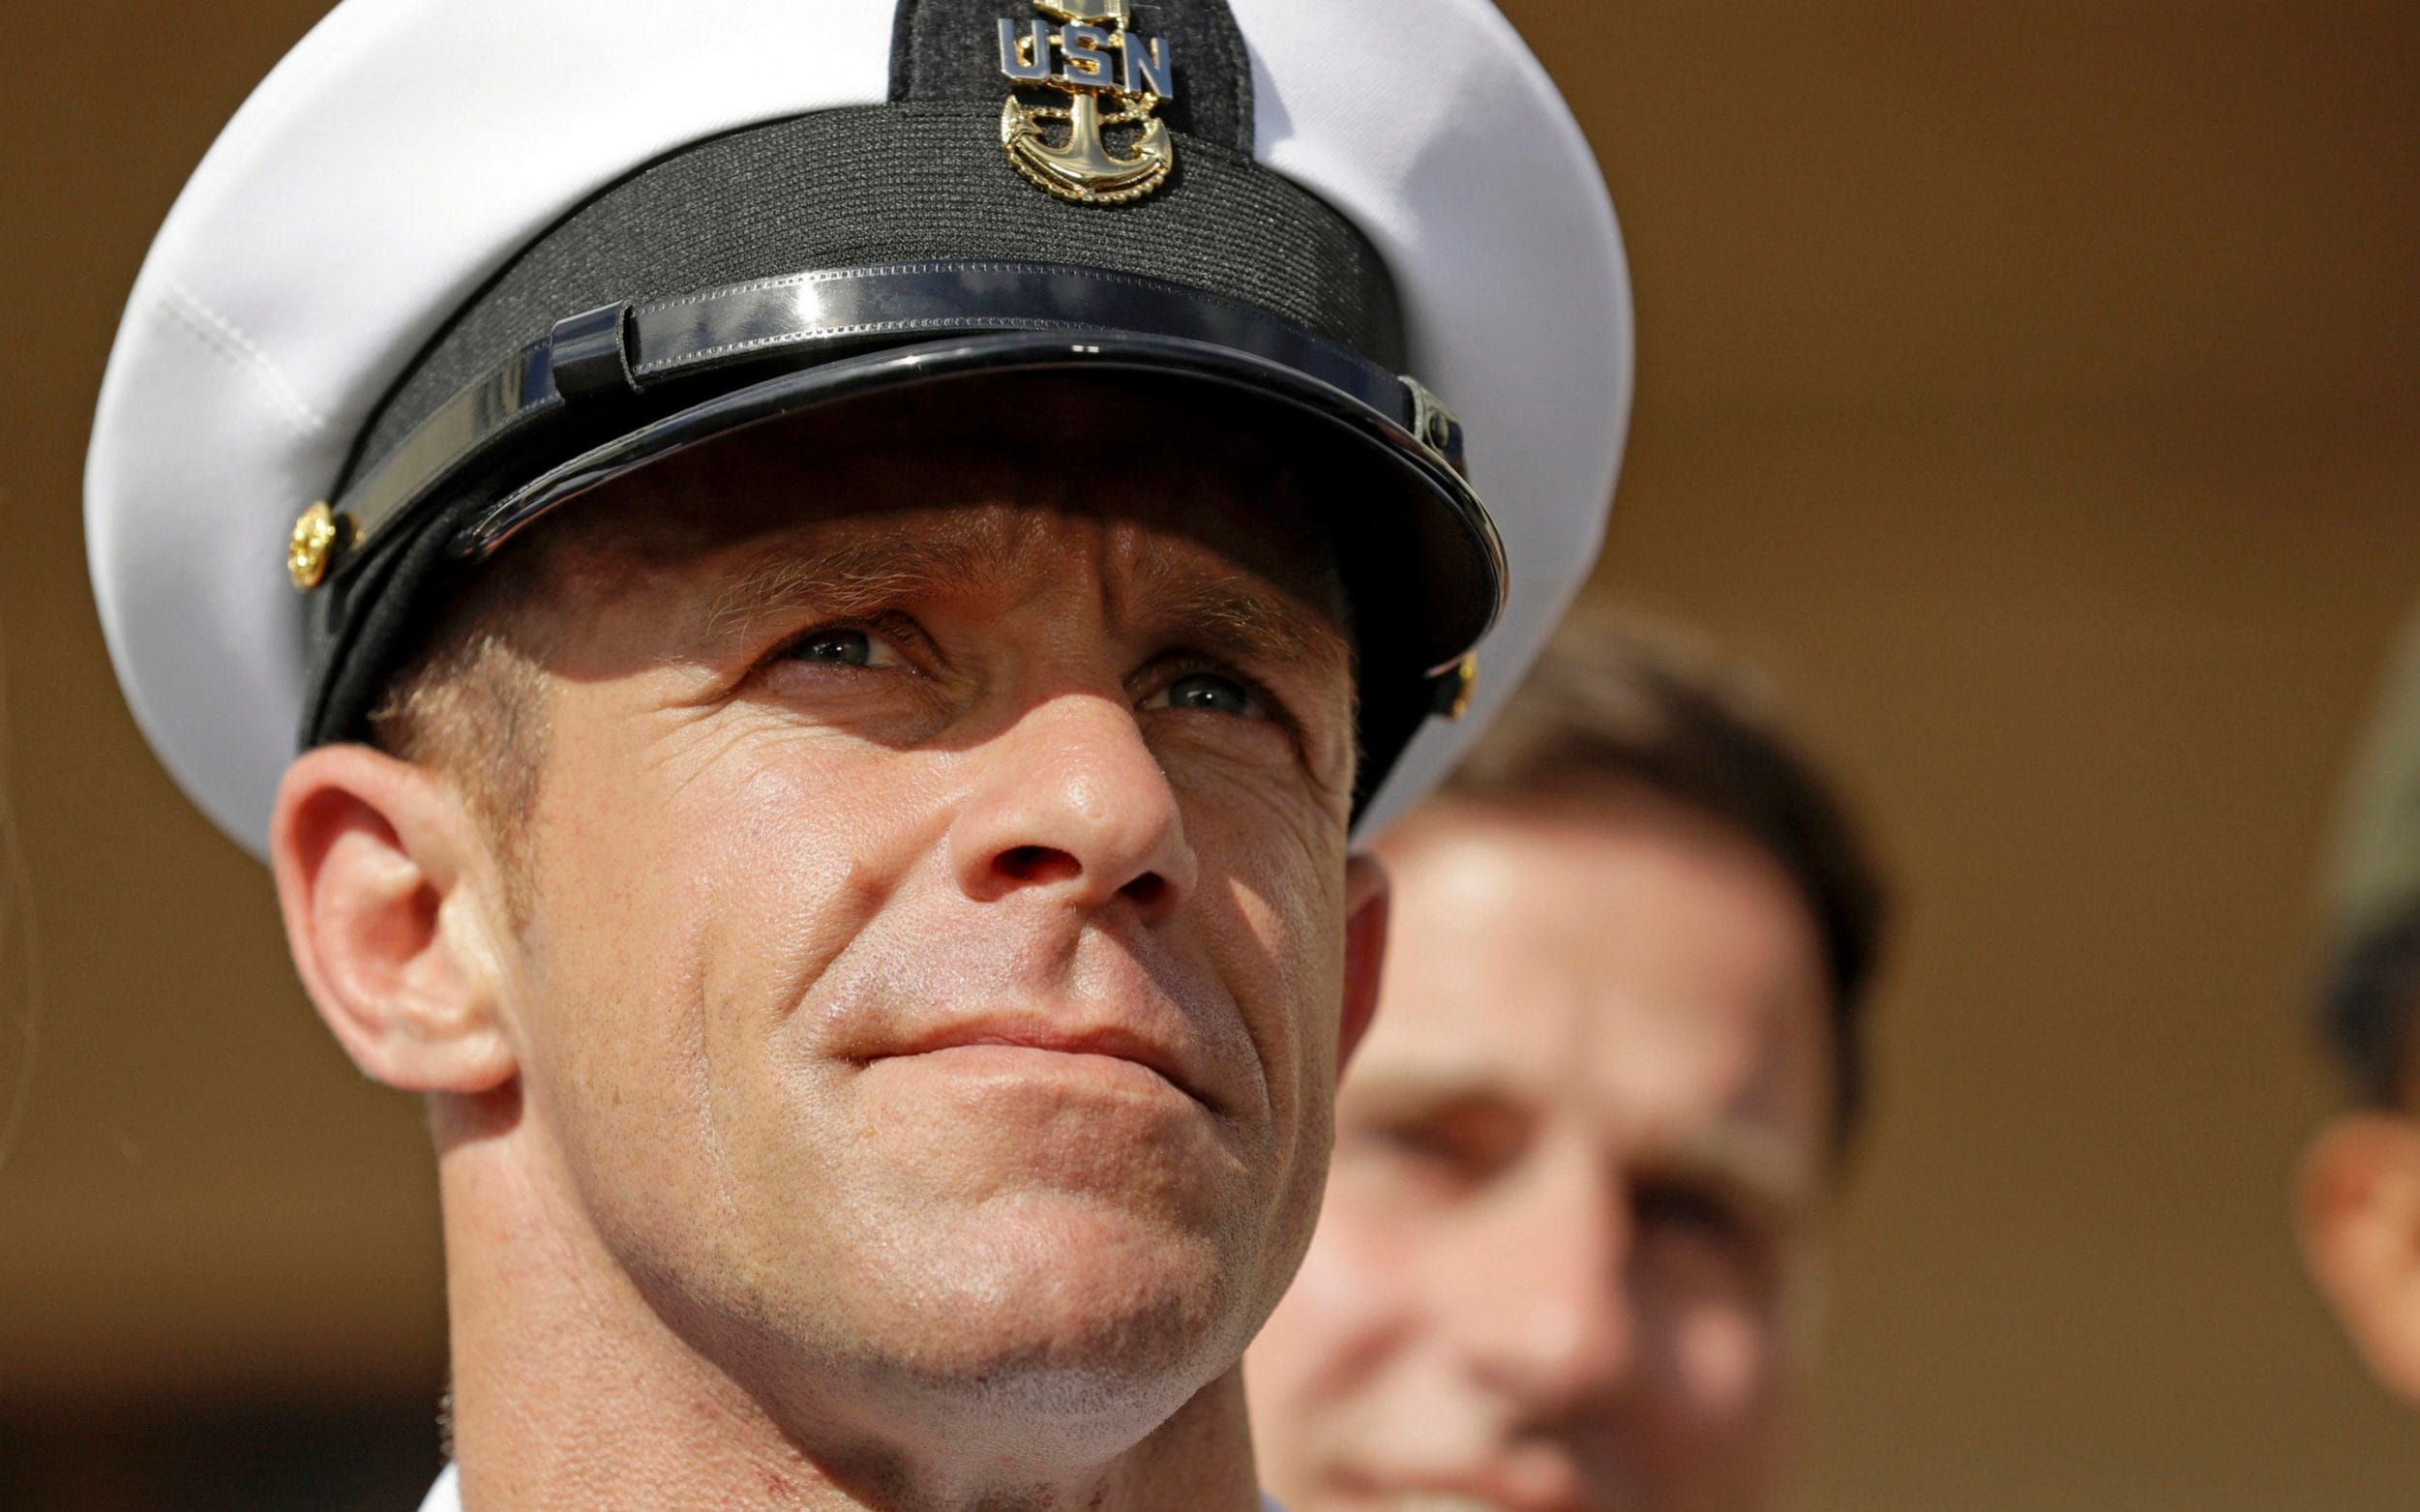 Navy SEAL Edward Gallagher described by his own unit as evil, toxic and perfectly OK with killing anybody